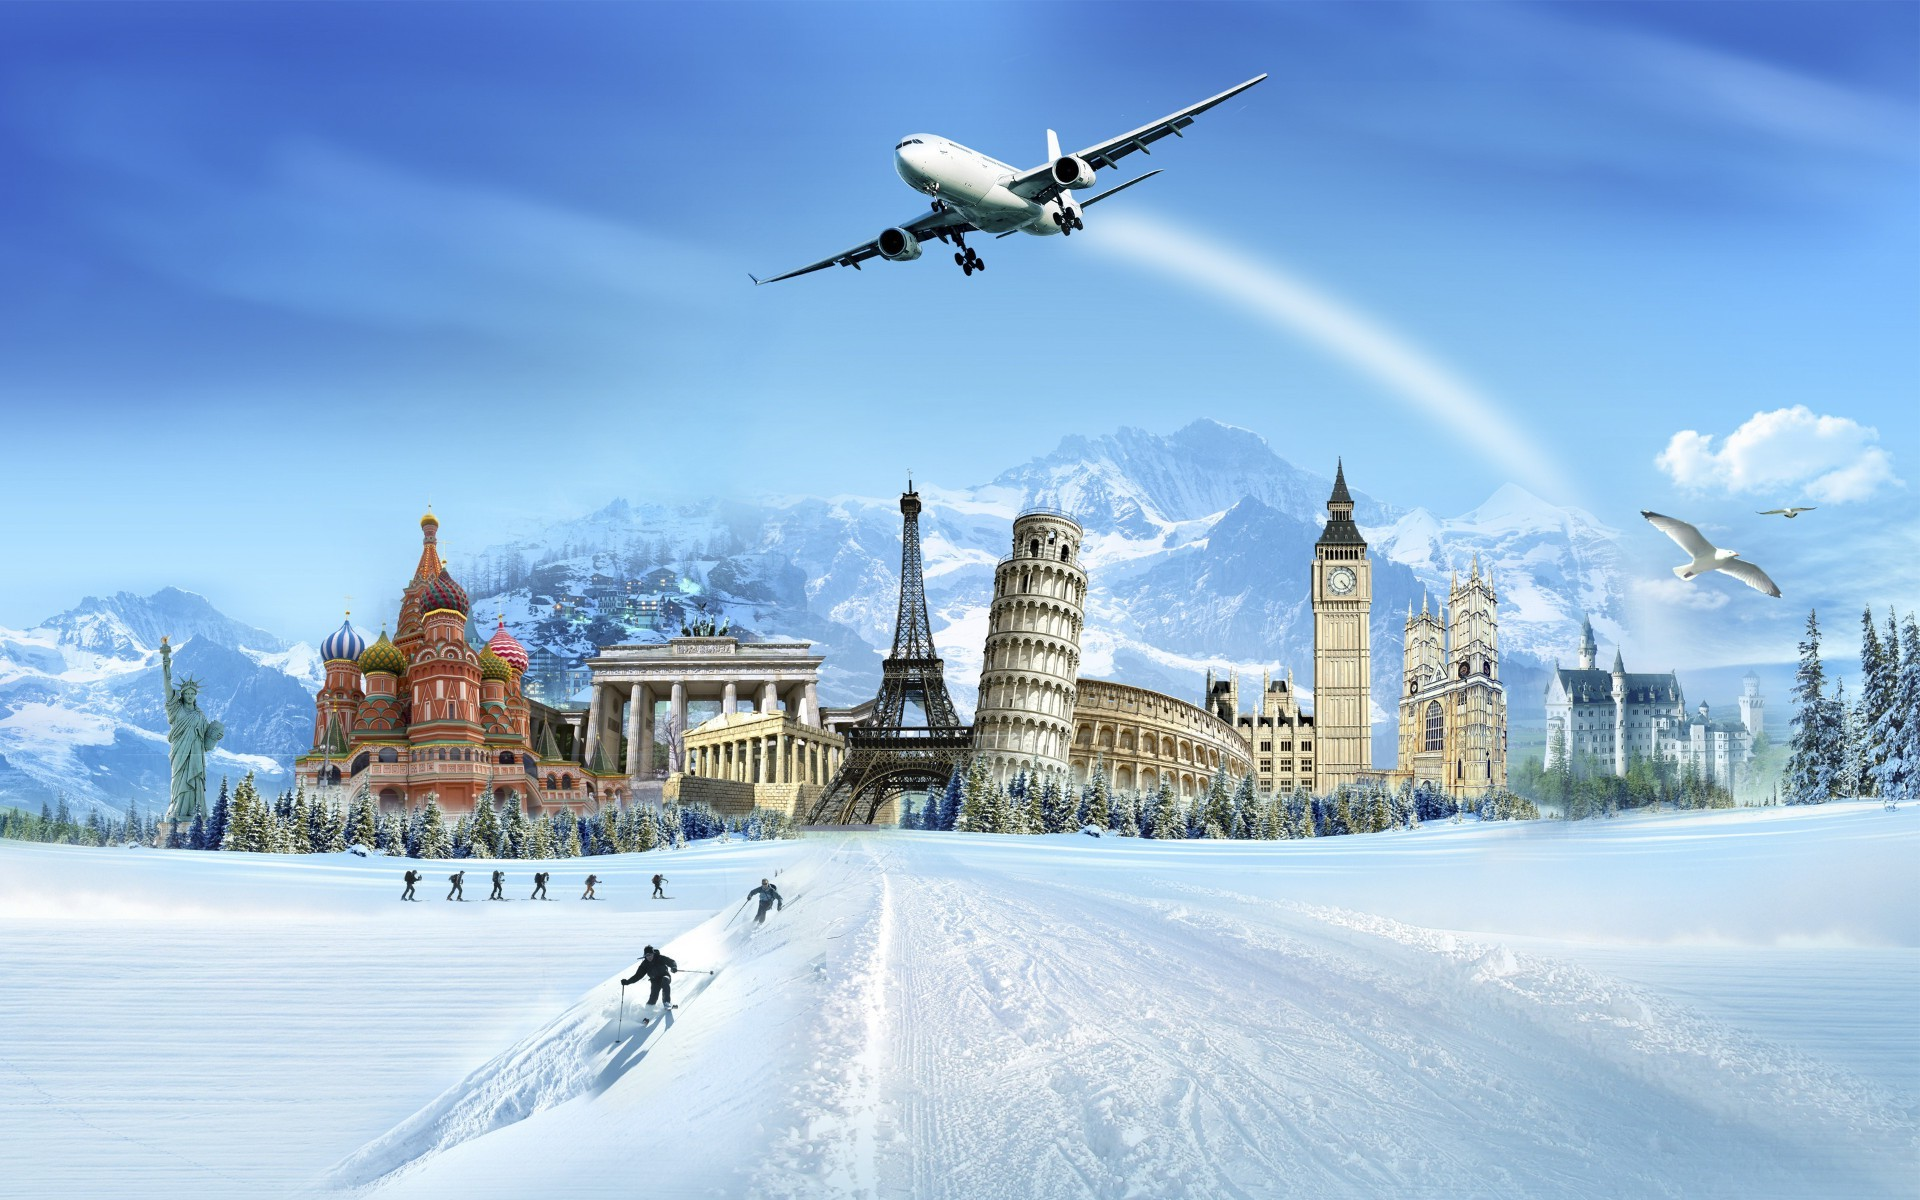 holiday abroad Find best holiday packages in india and international destinations at cox & kings for an amazing vacation take your pick from honeymoon packages, pilgrimage tours, luxury holidays and more.